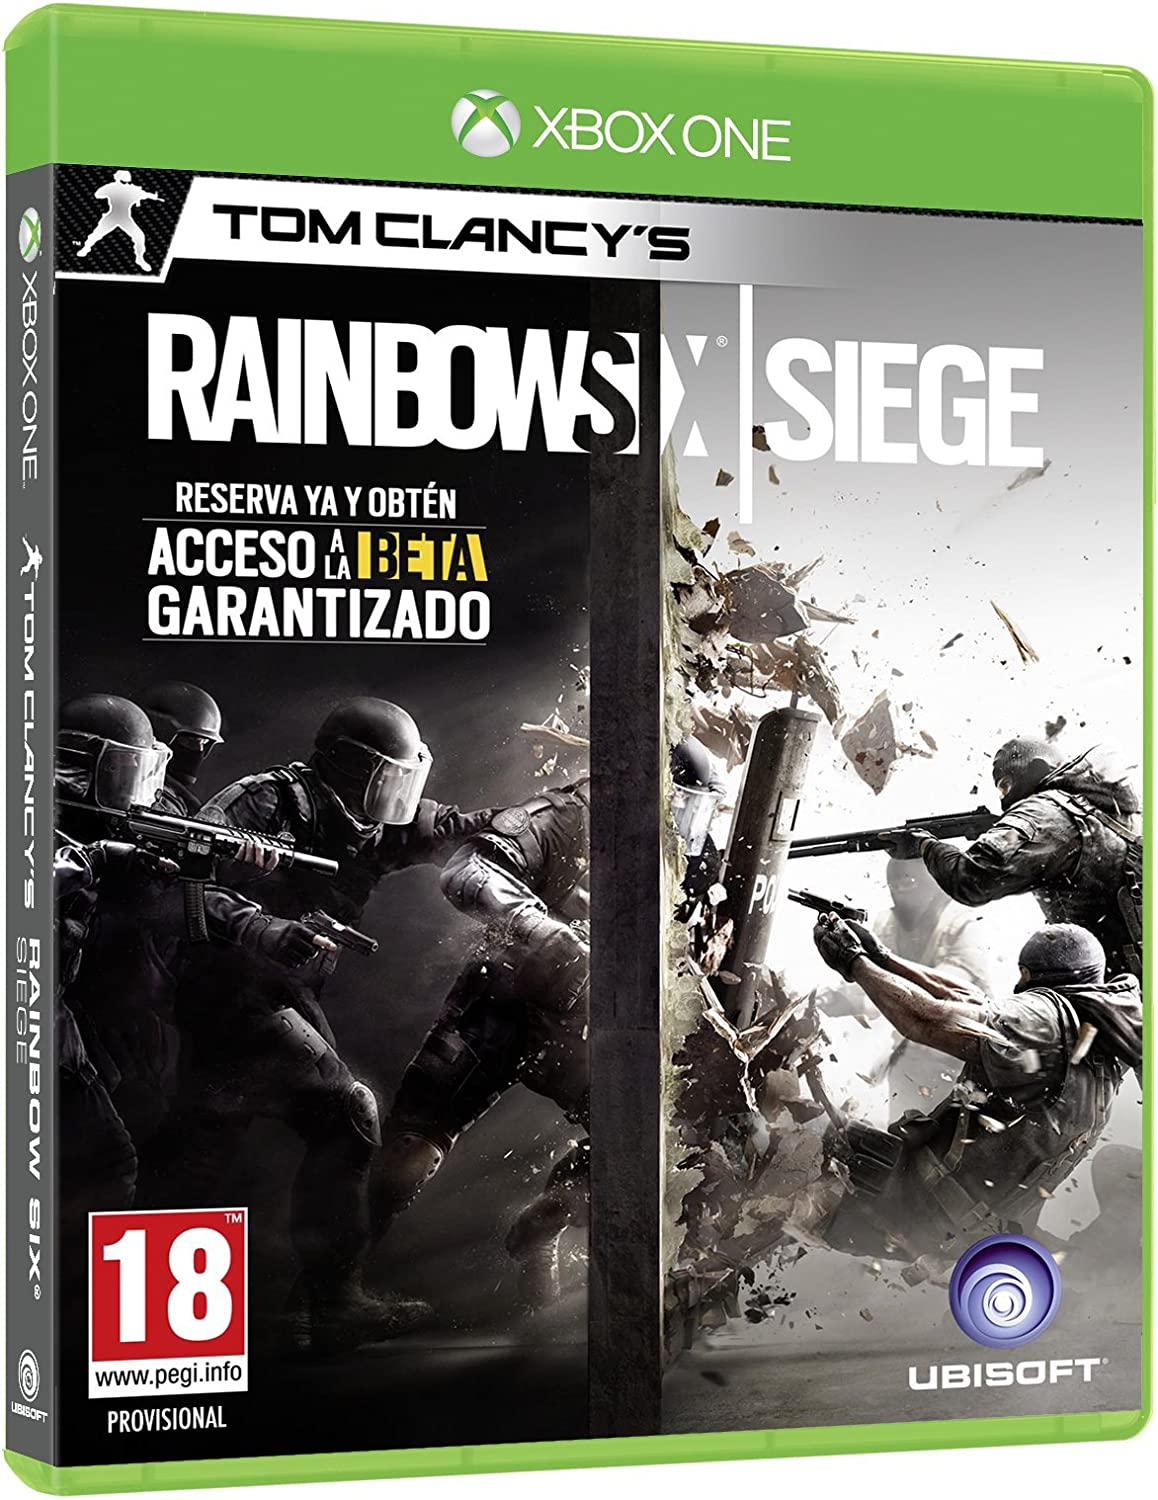 Rainbow Six Siege: Amazon.es: Videojuegos